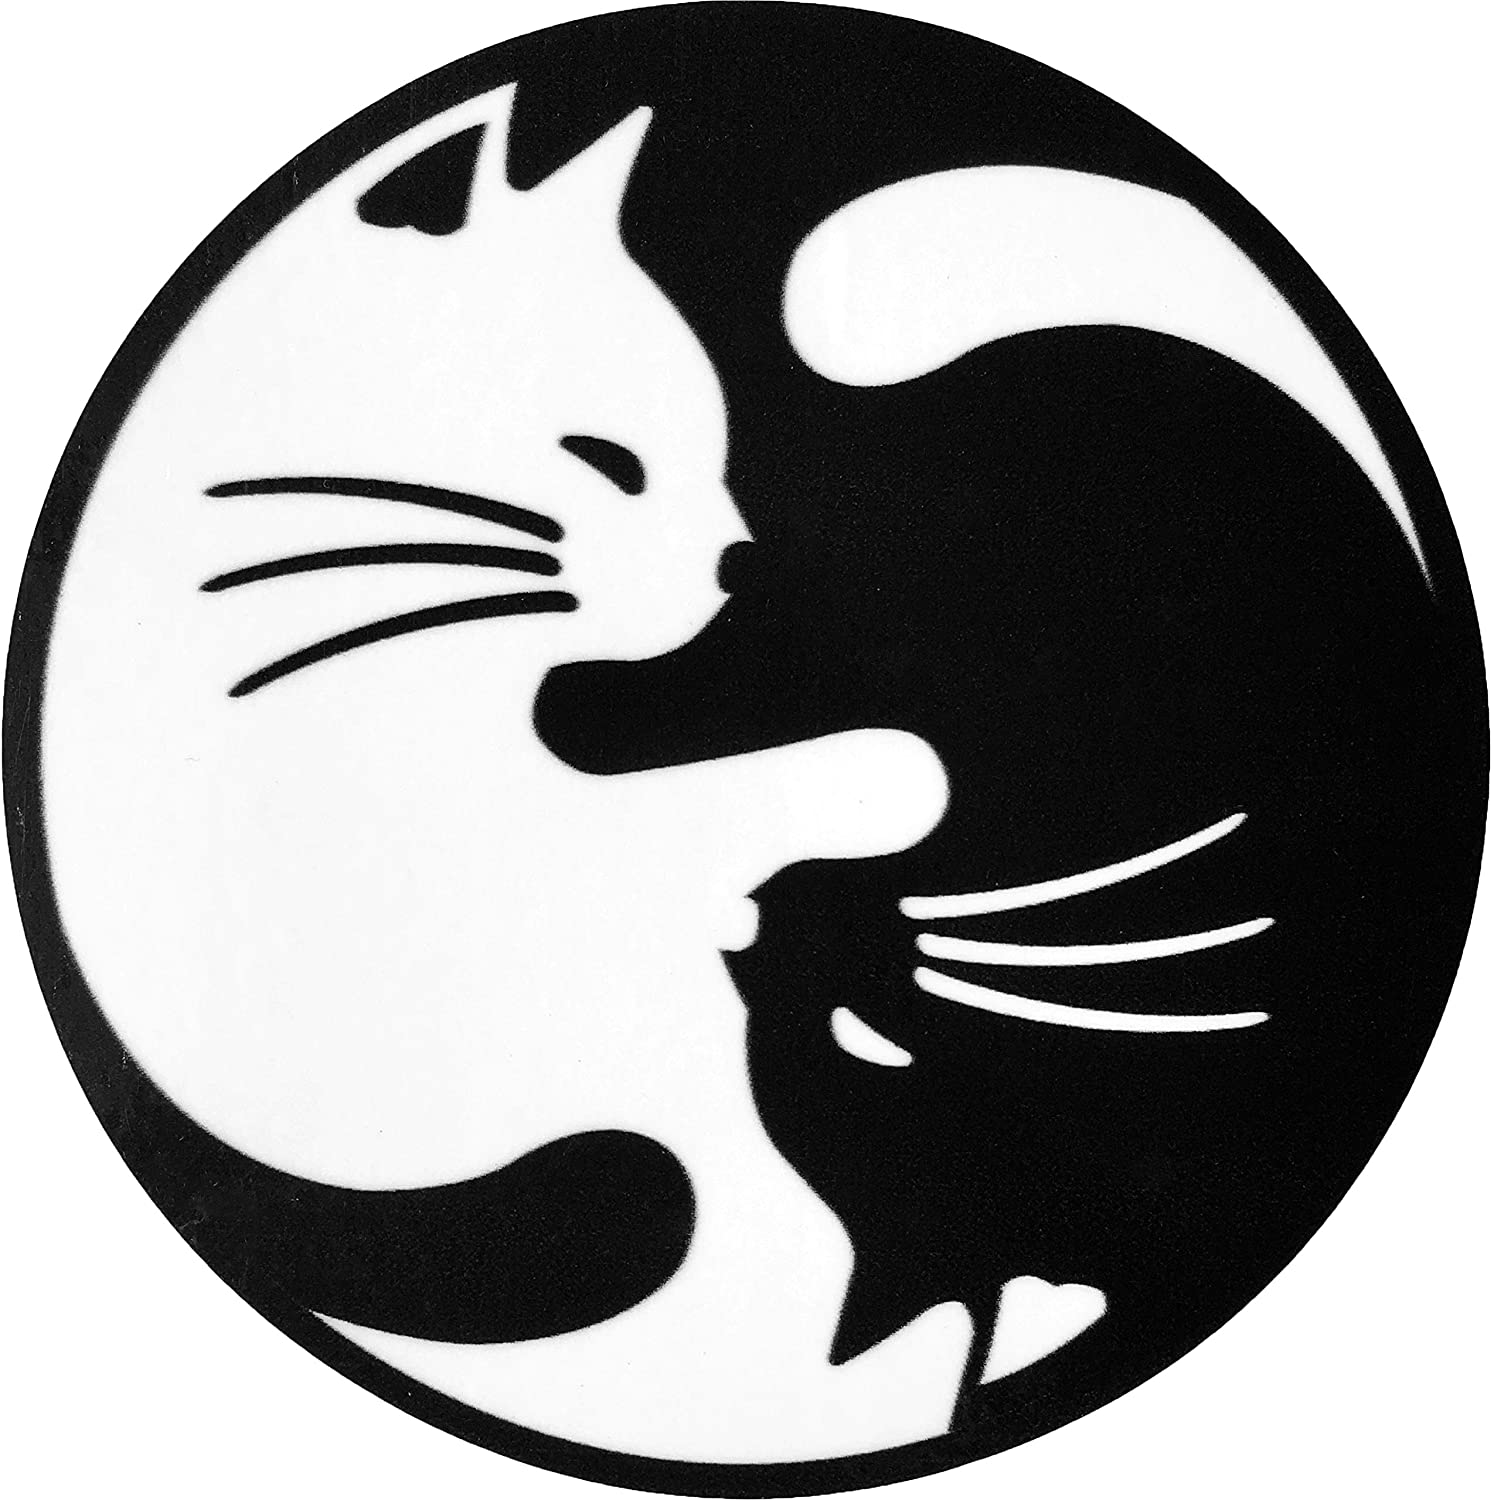 Papapatch Cat Yin Yang Kung Fu Chinese Tao Balance Sign Vinyl Window Laptop Wall Decor Decal Sticker (STK-CAT-YIN-YANG)